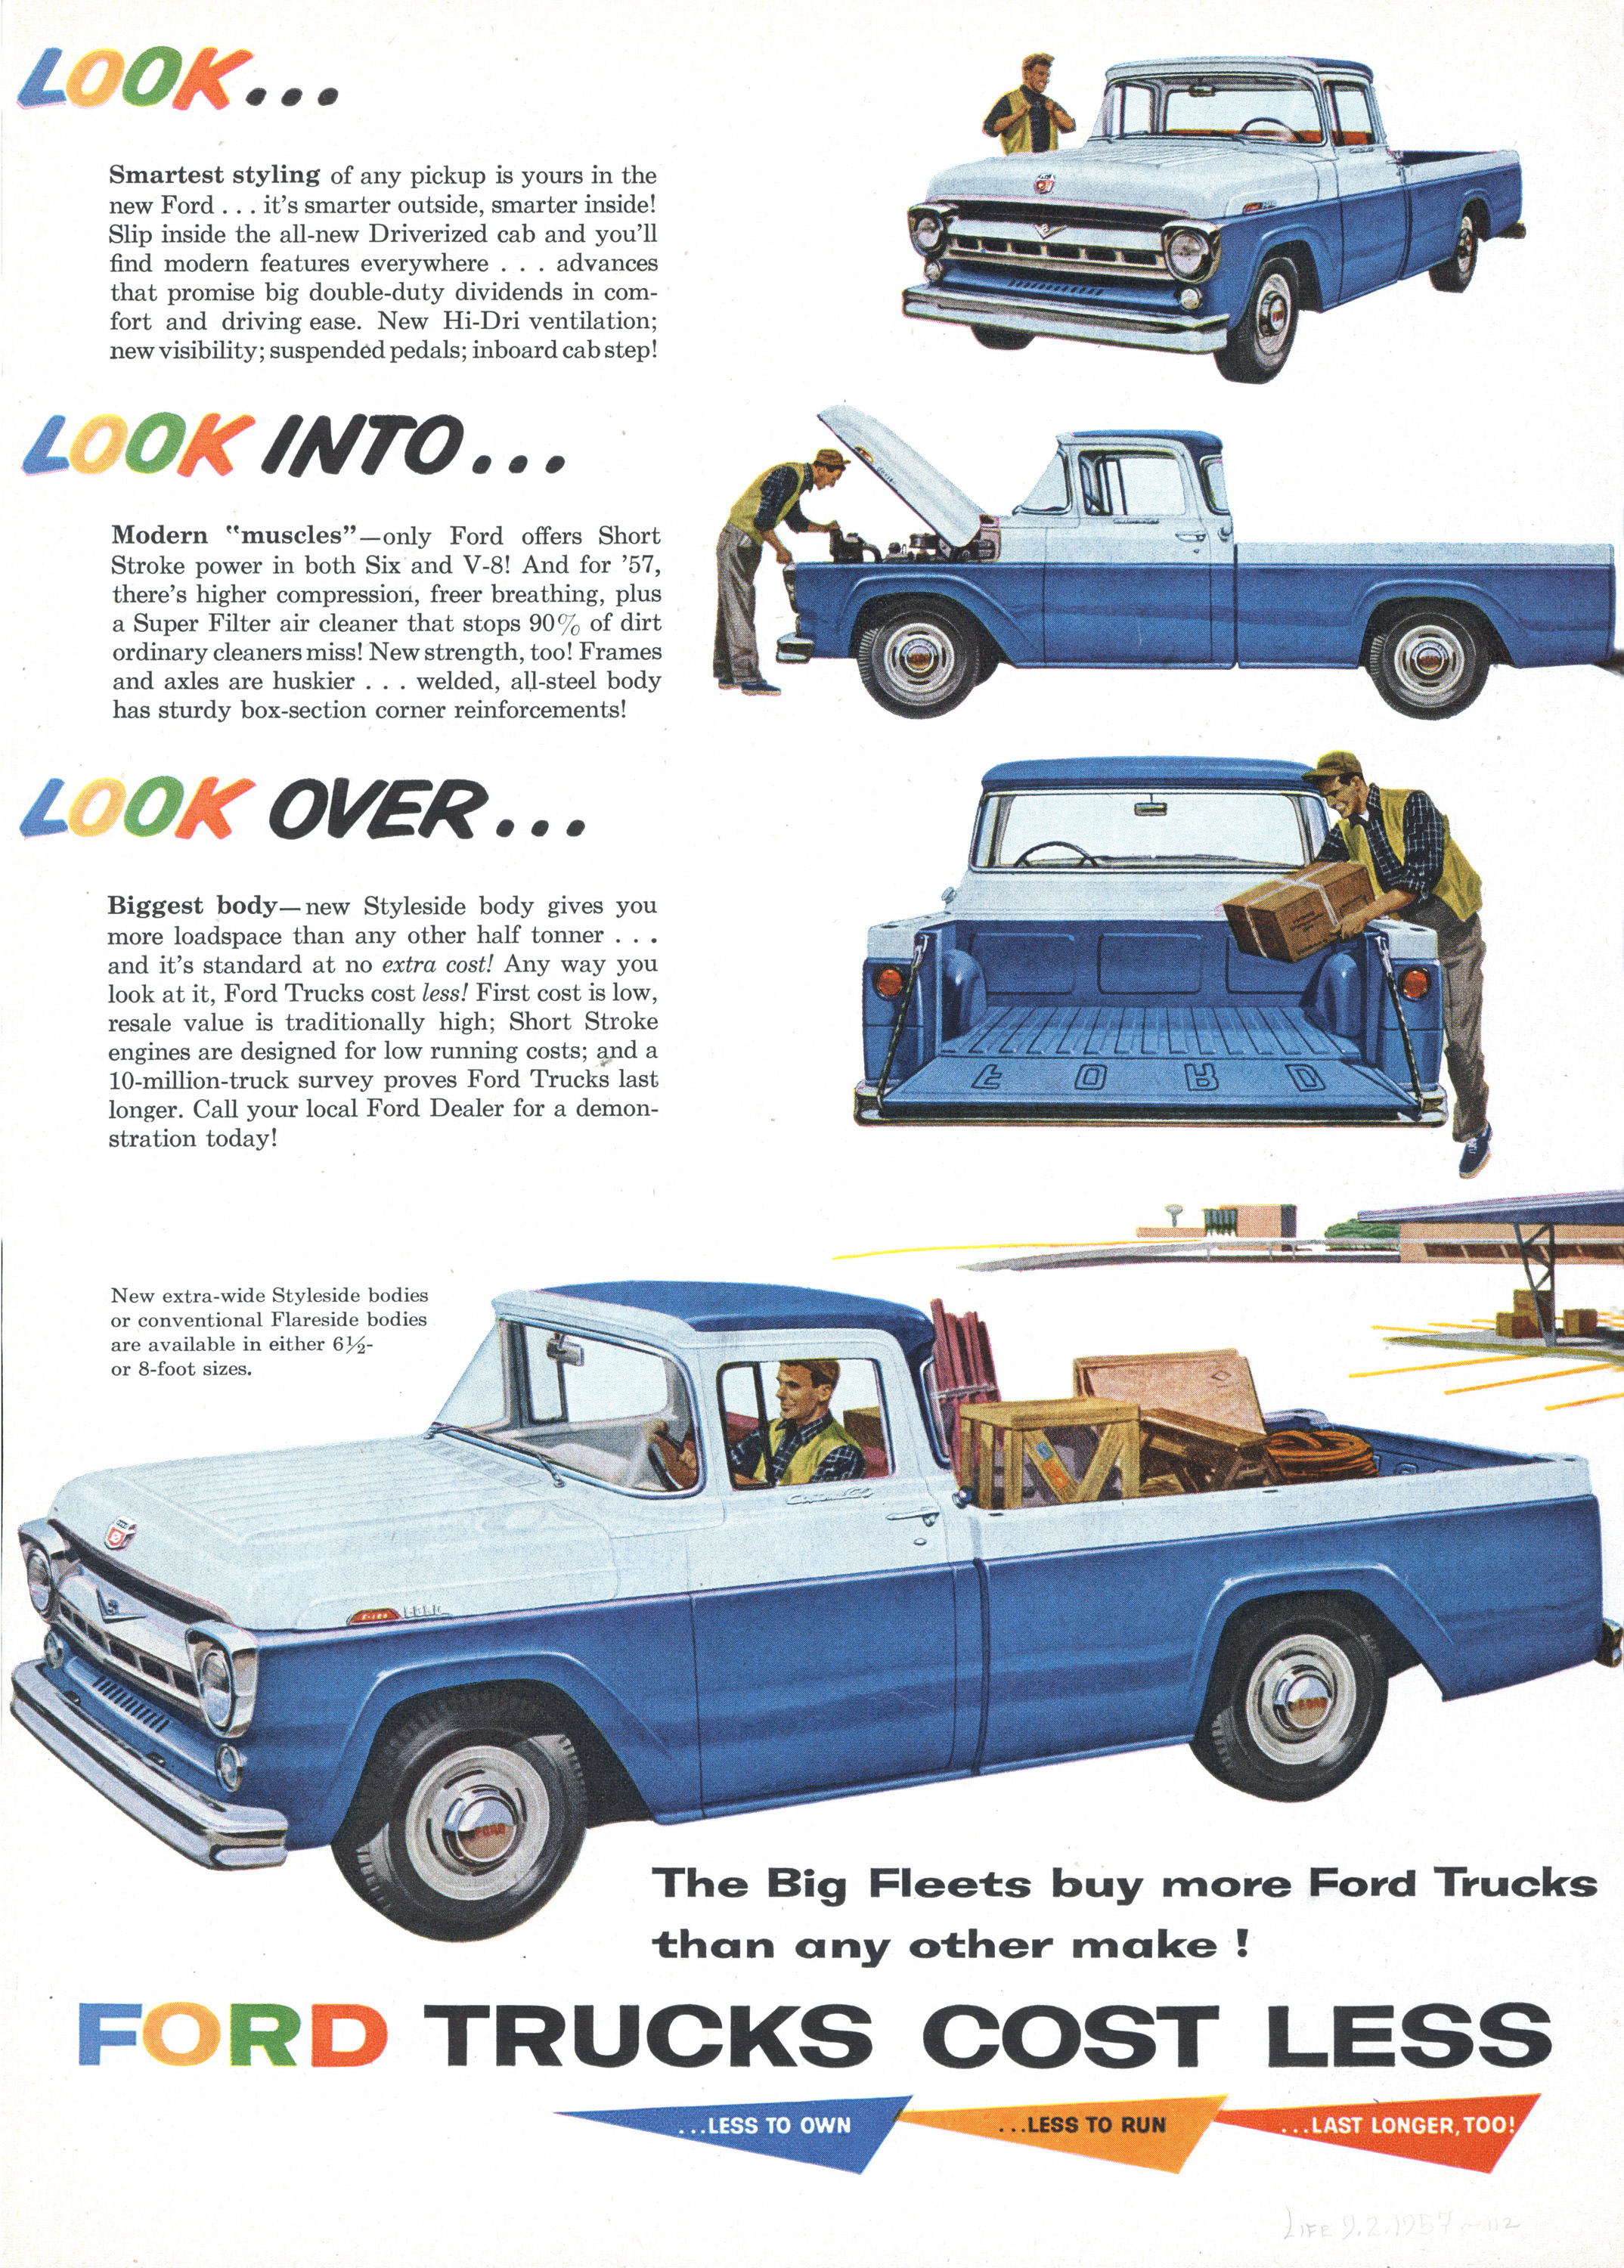 1959 Ford truck ad.